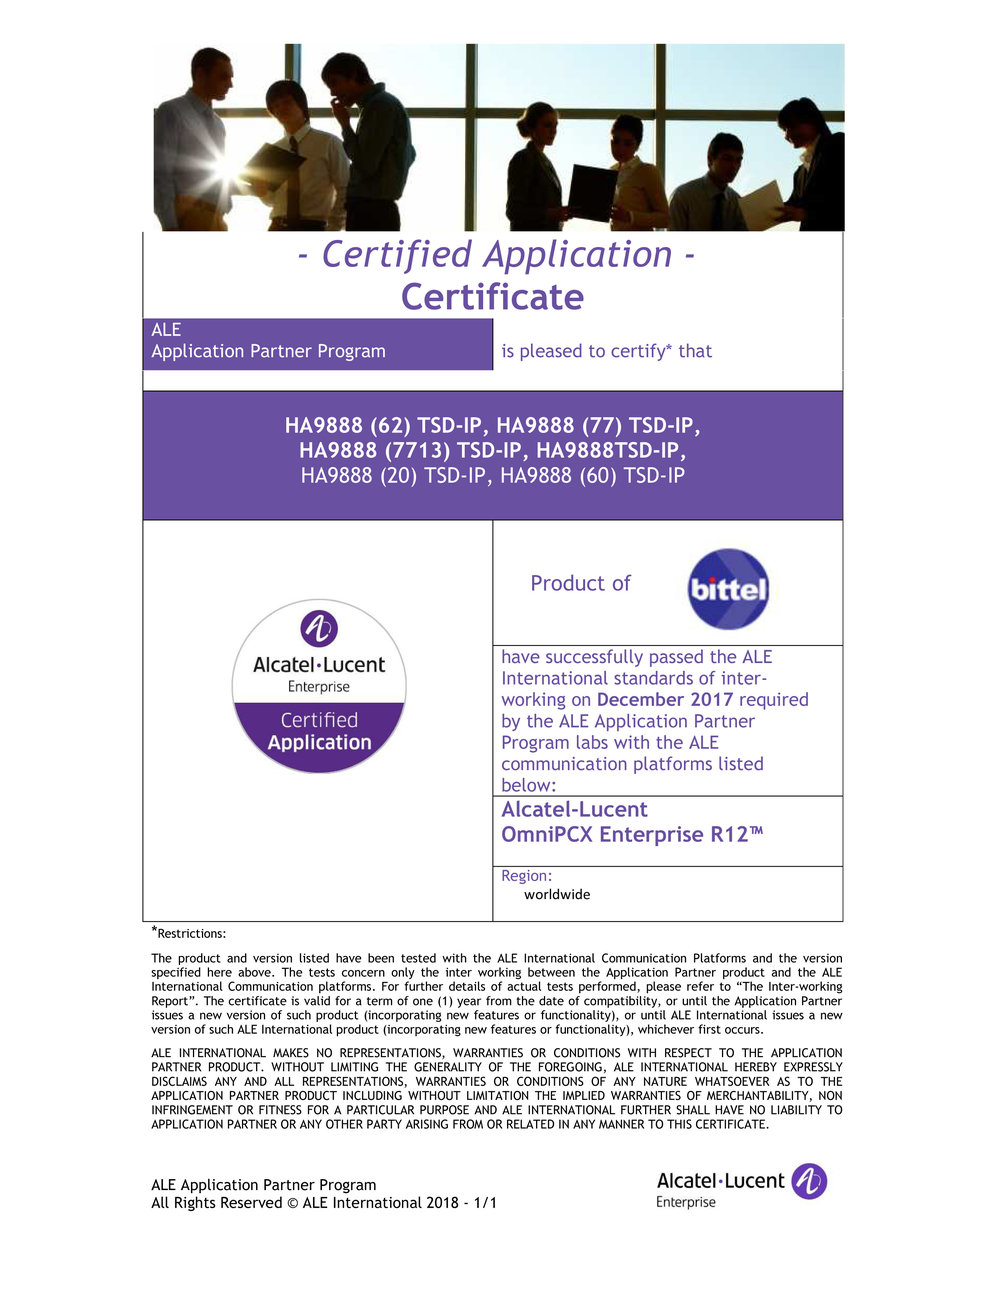 Alcatel-Lucent copy.jpg